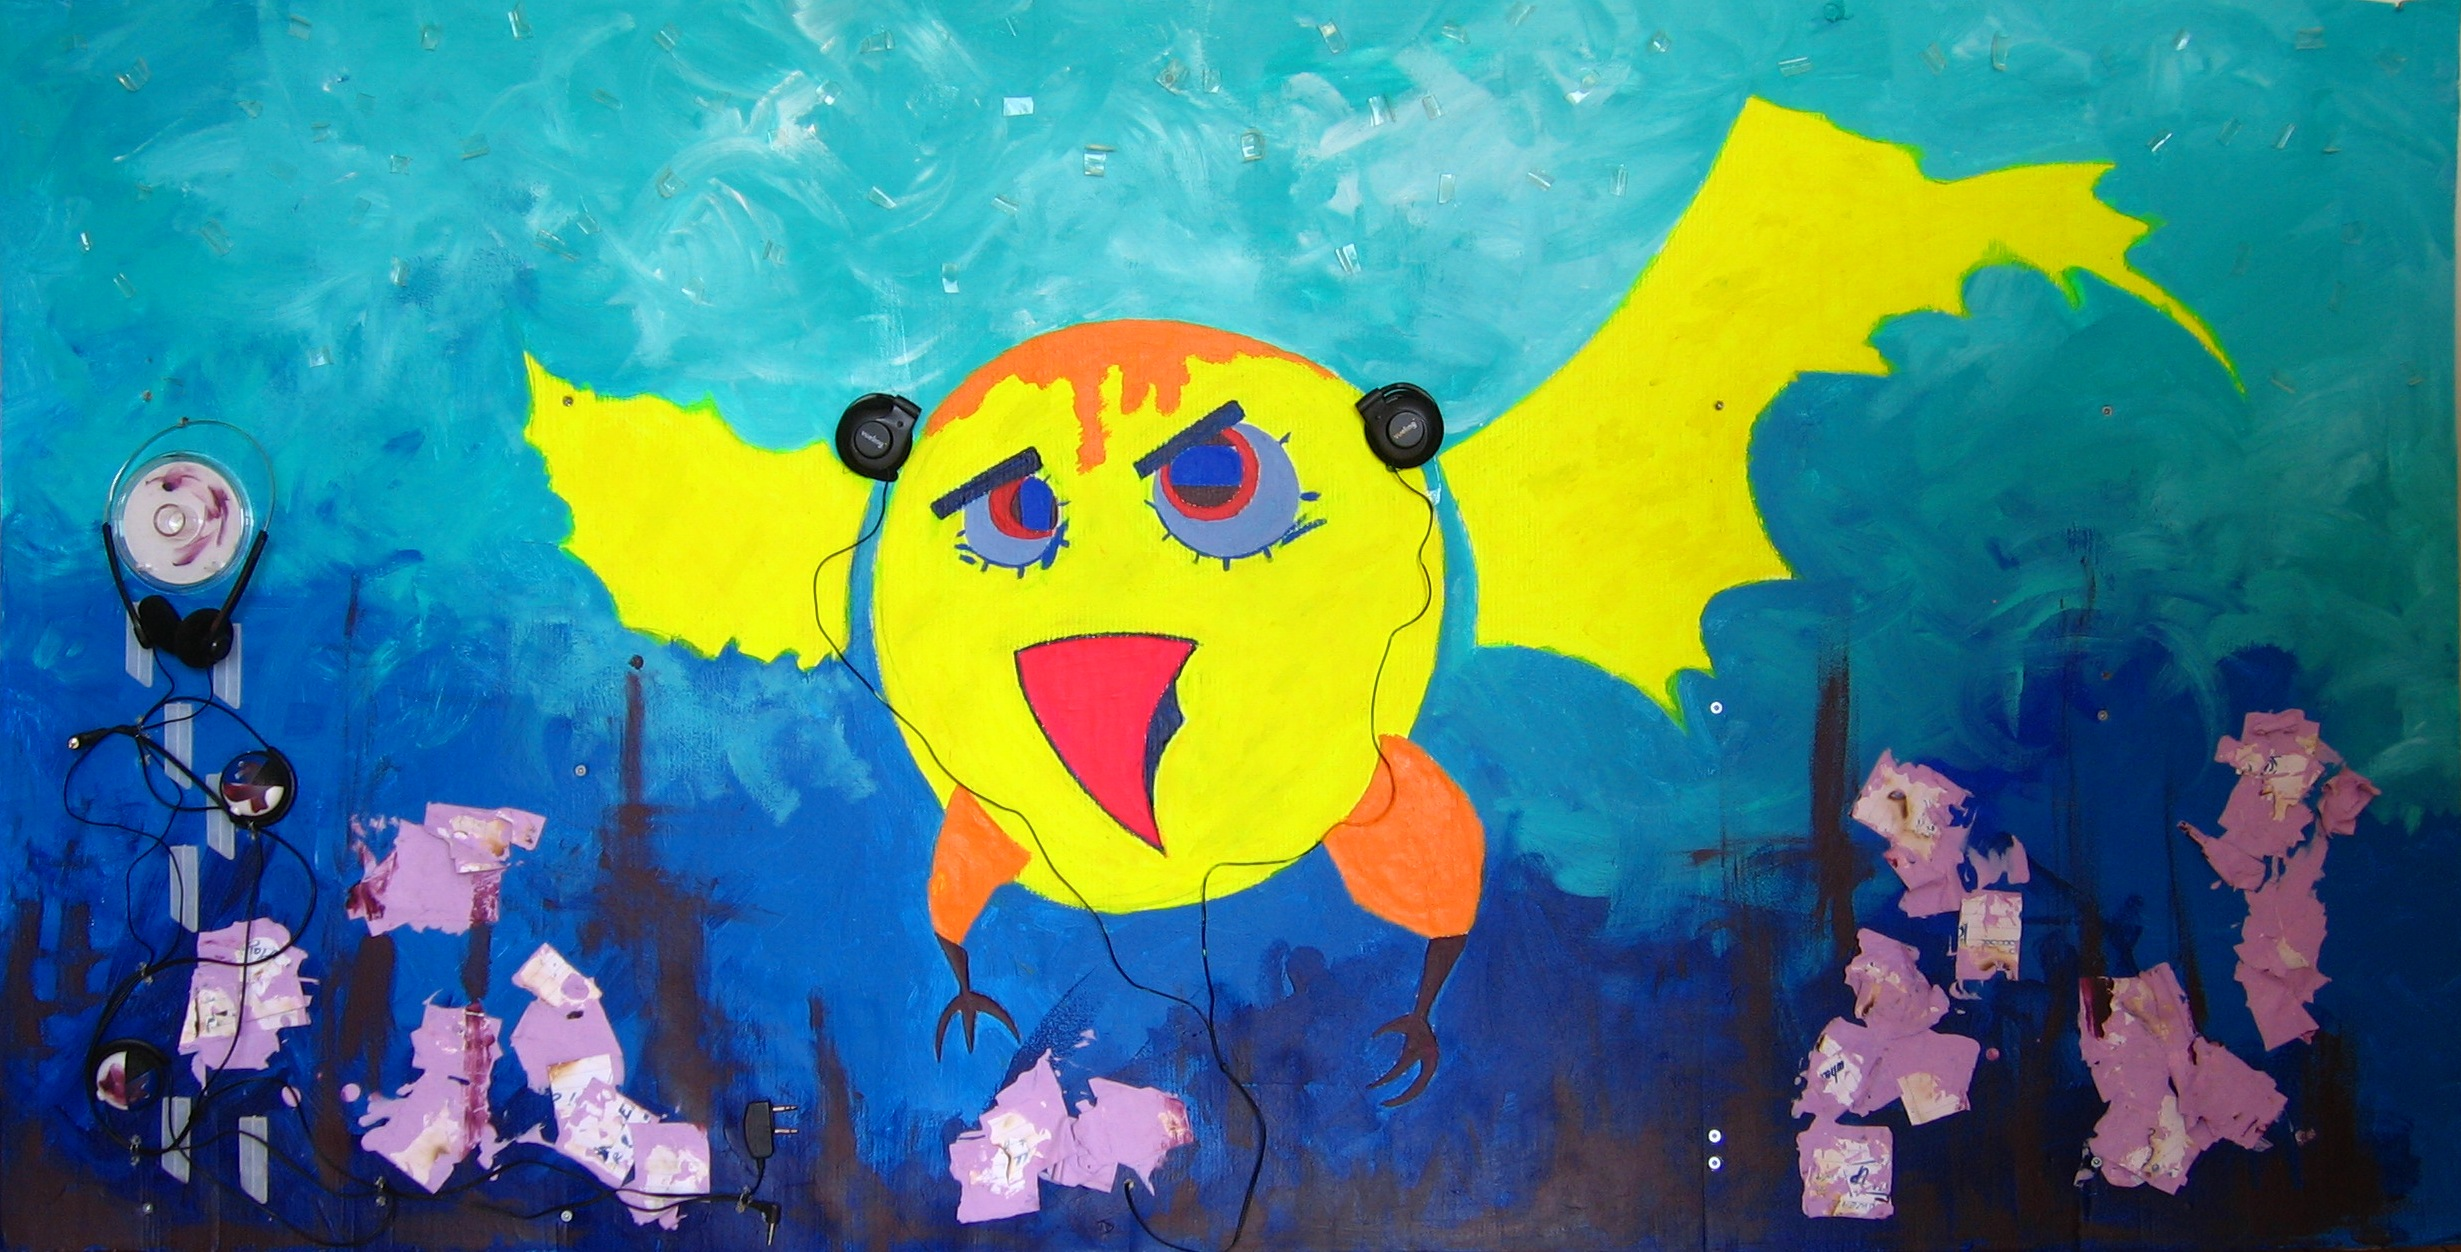 The Sound of Bird  2008 Mixed media on canvas 158 x 82cm